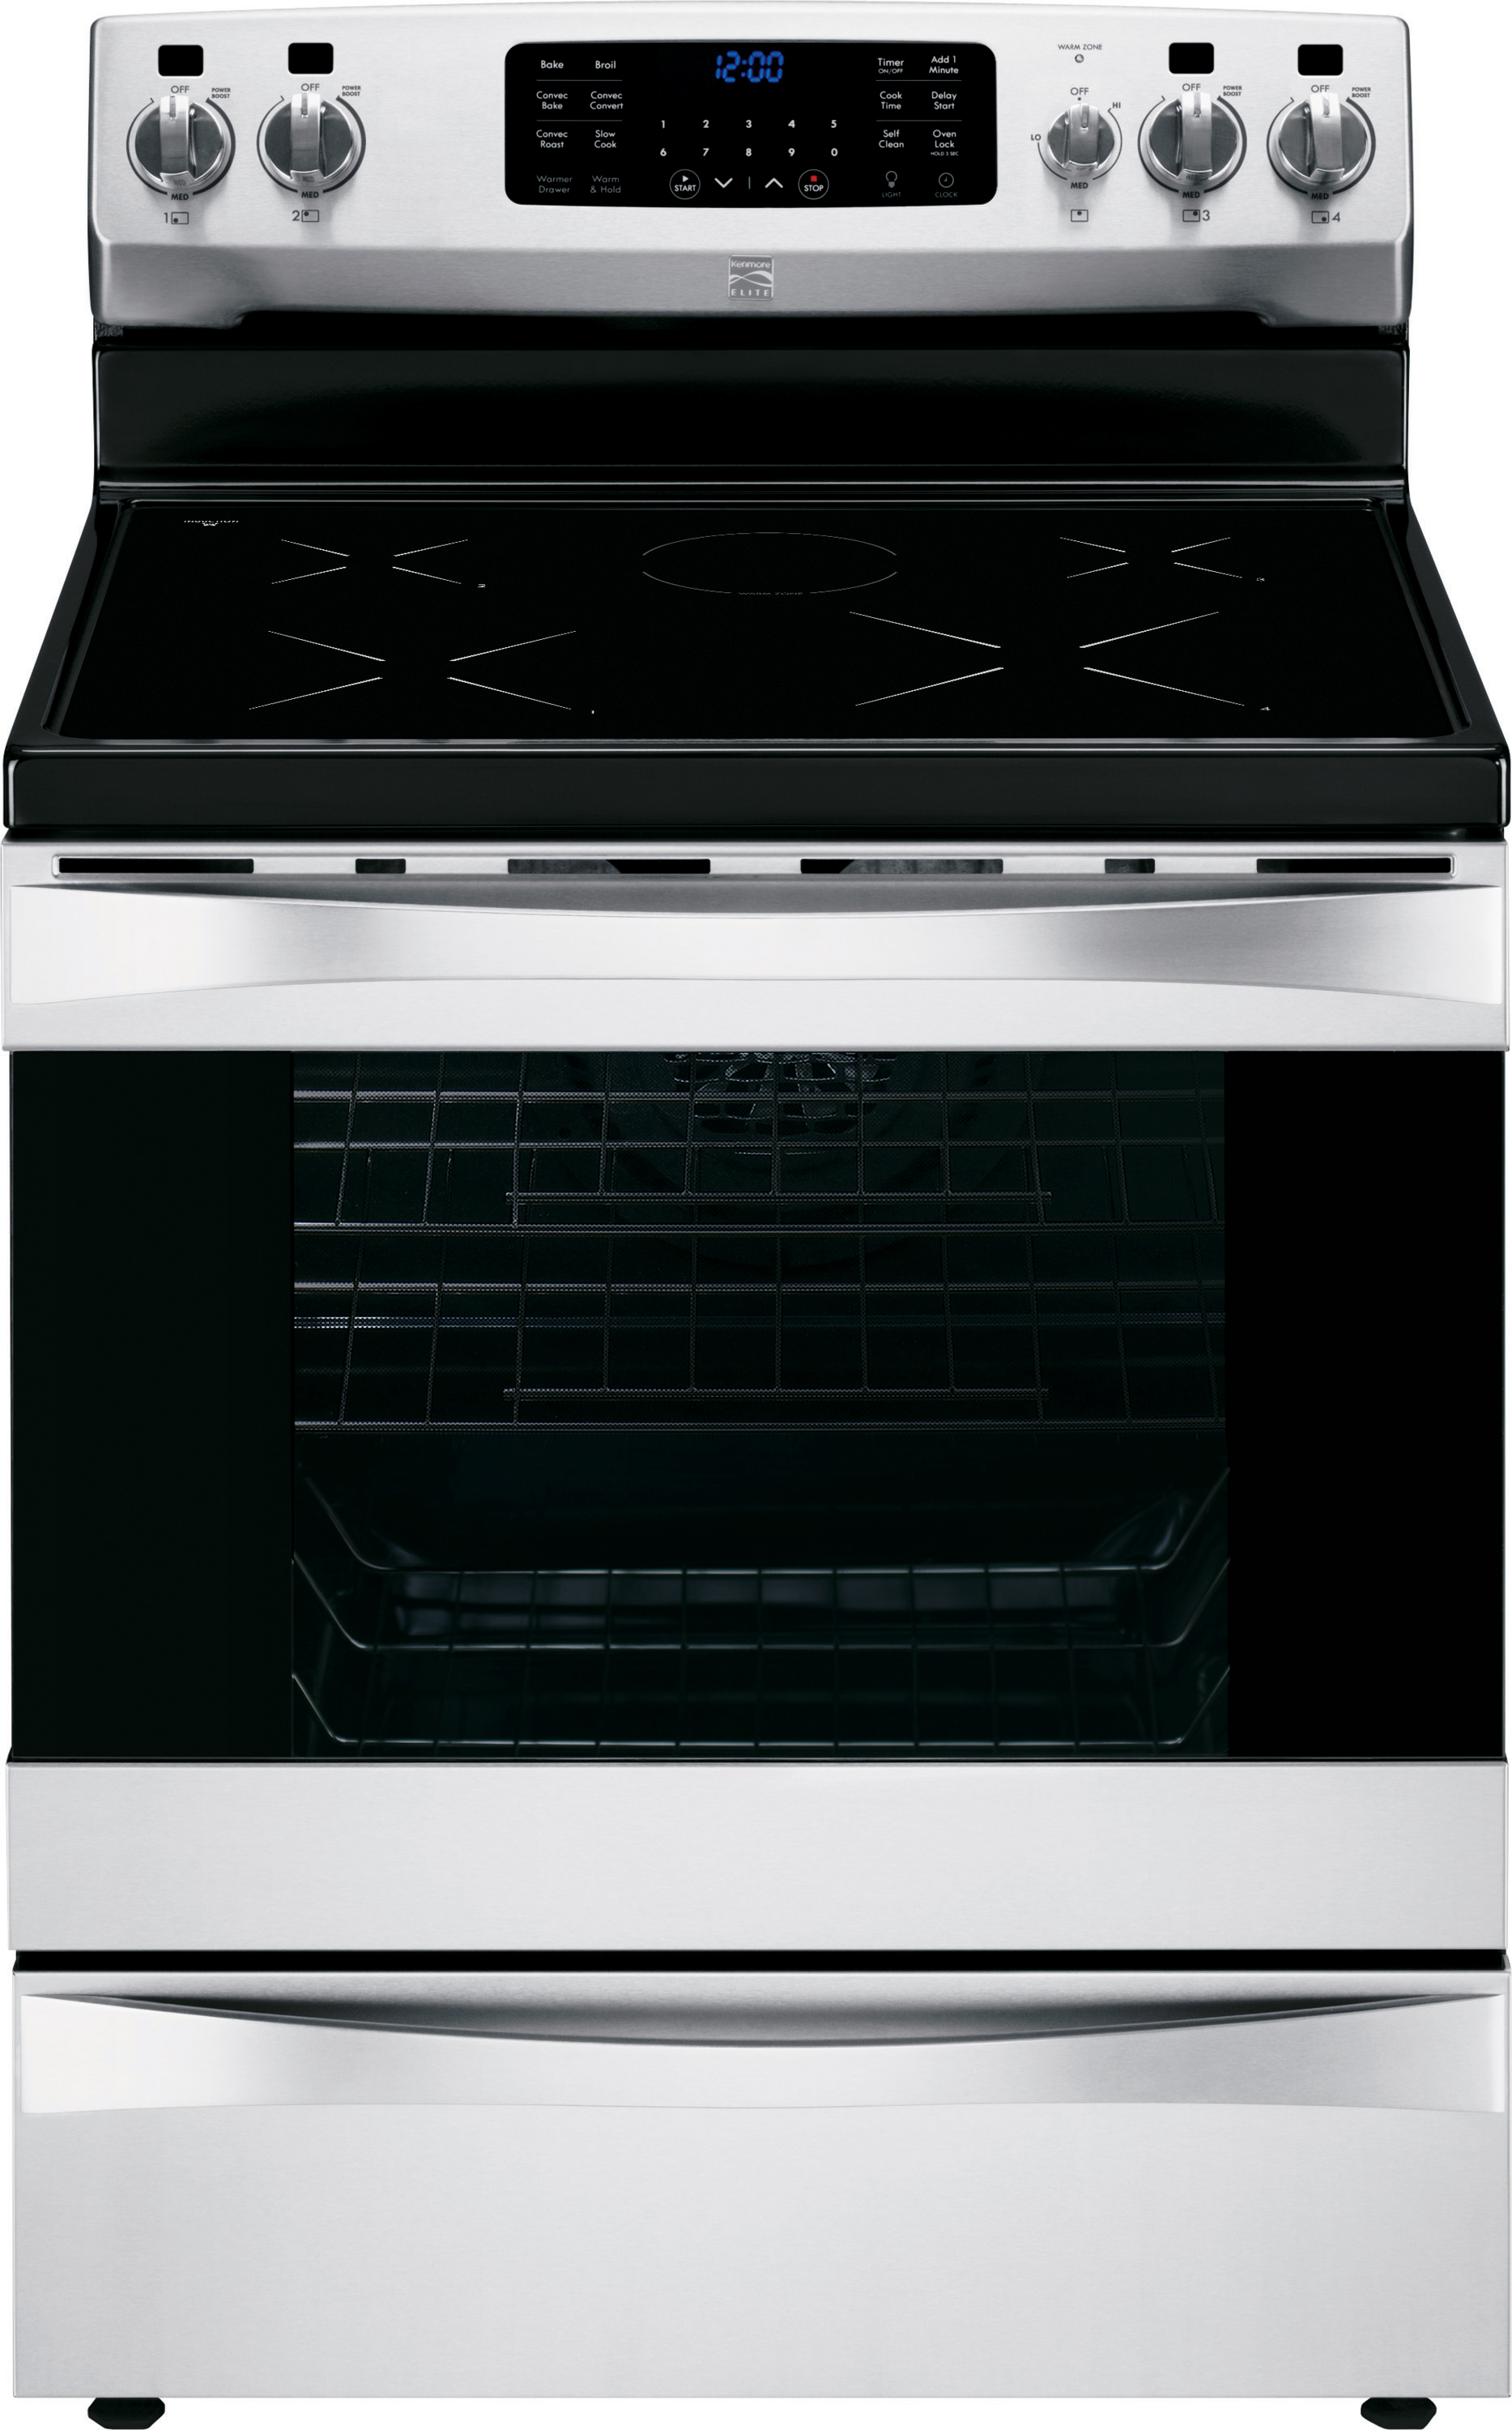 Kenmore Elite 6.1 cu. ft. Freestanding Induction Range w/ True Convection - Stainless Steel